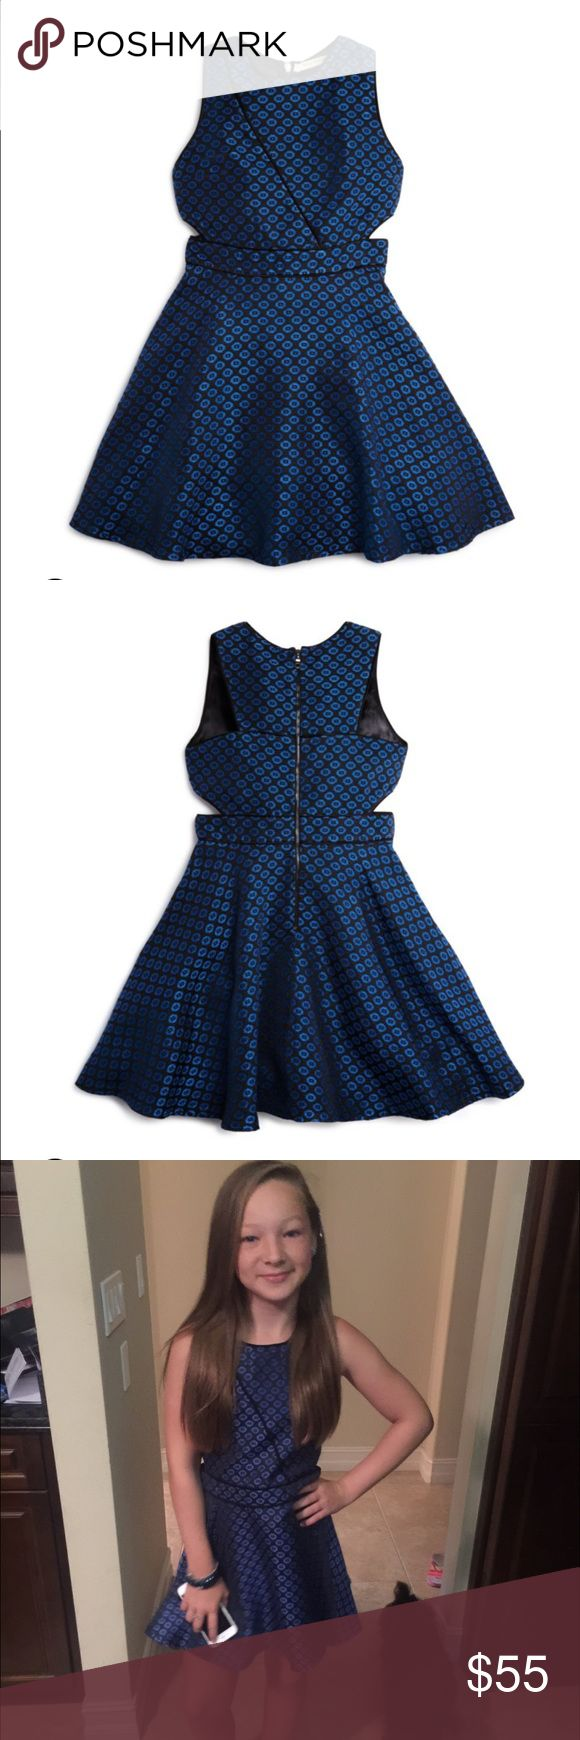 Miss Behave girls size L blue and black dress. Miss Behave girls Large blue and black dress. Adorable and in EUC. Worn once for her 5th grade graduation. It was tailored to fit her perfectly. miss behave girls Dresses